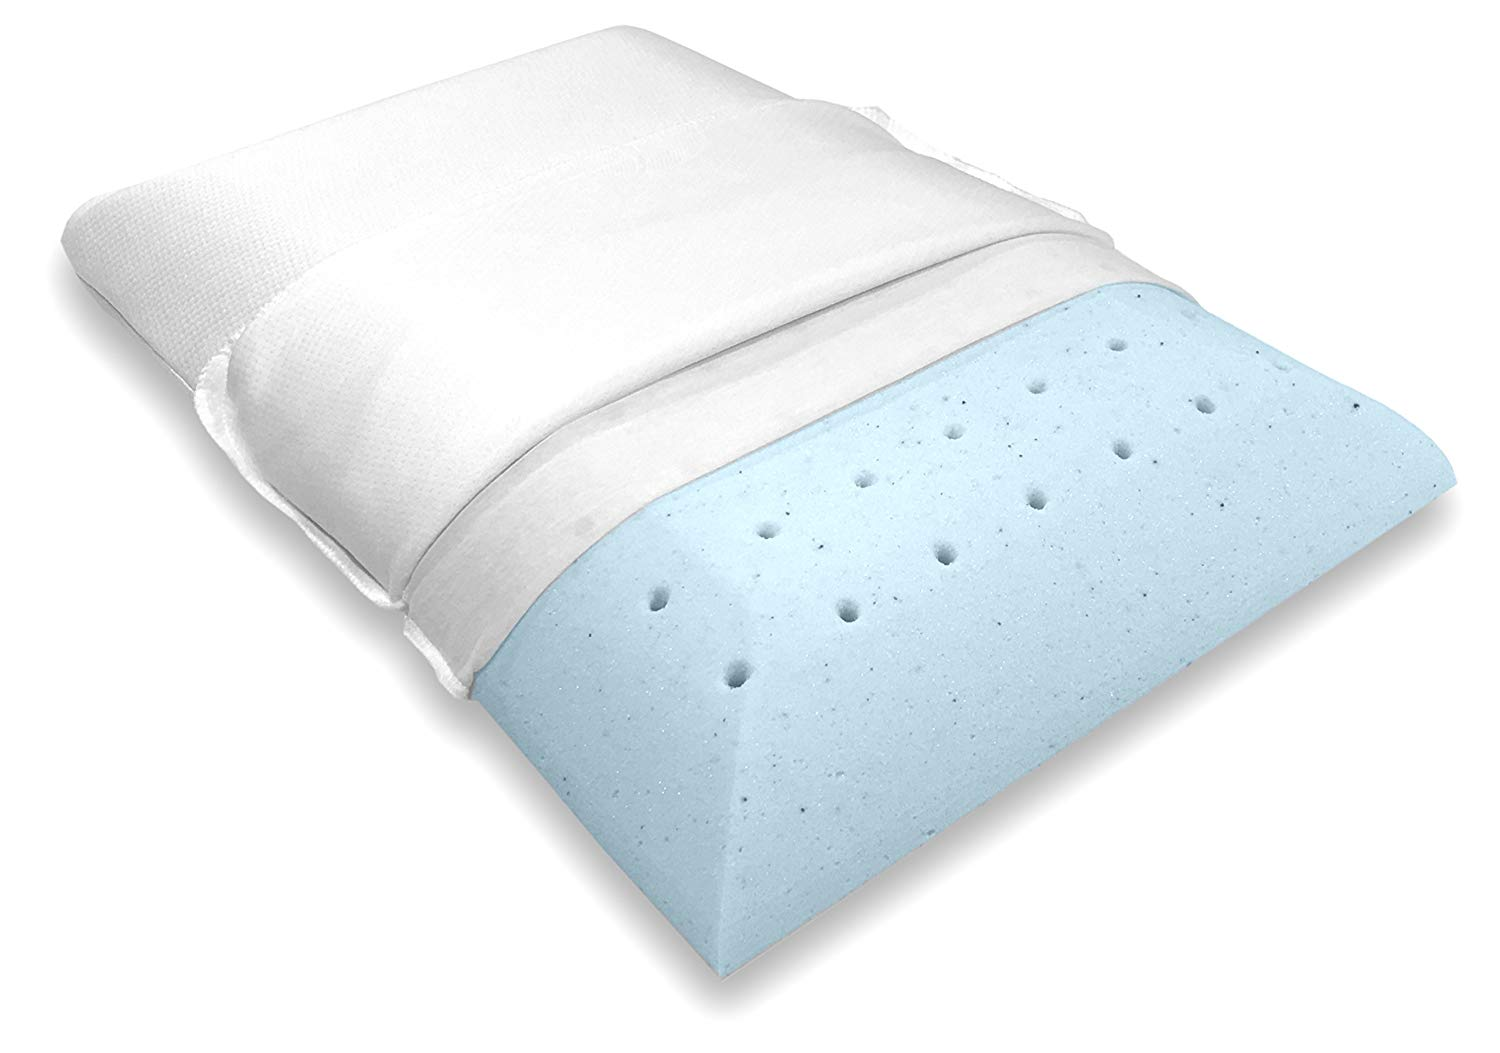 Bluewave Bedding Most Comfortable Pillow Review by www.snoremagazine.com